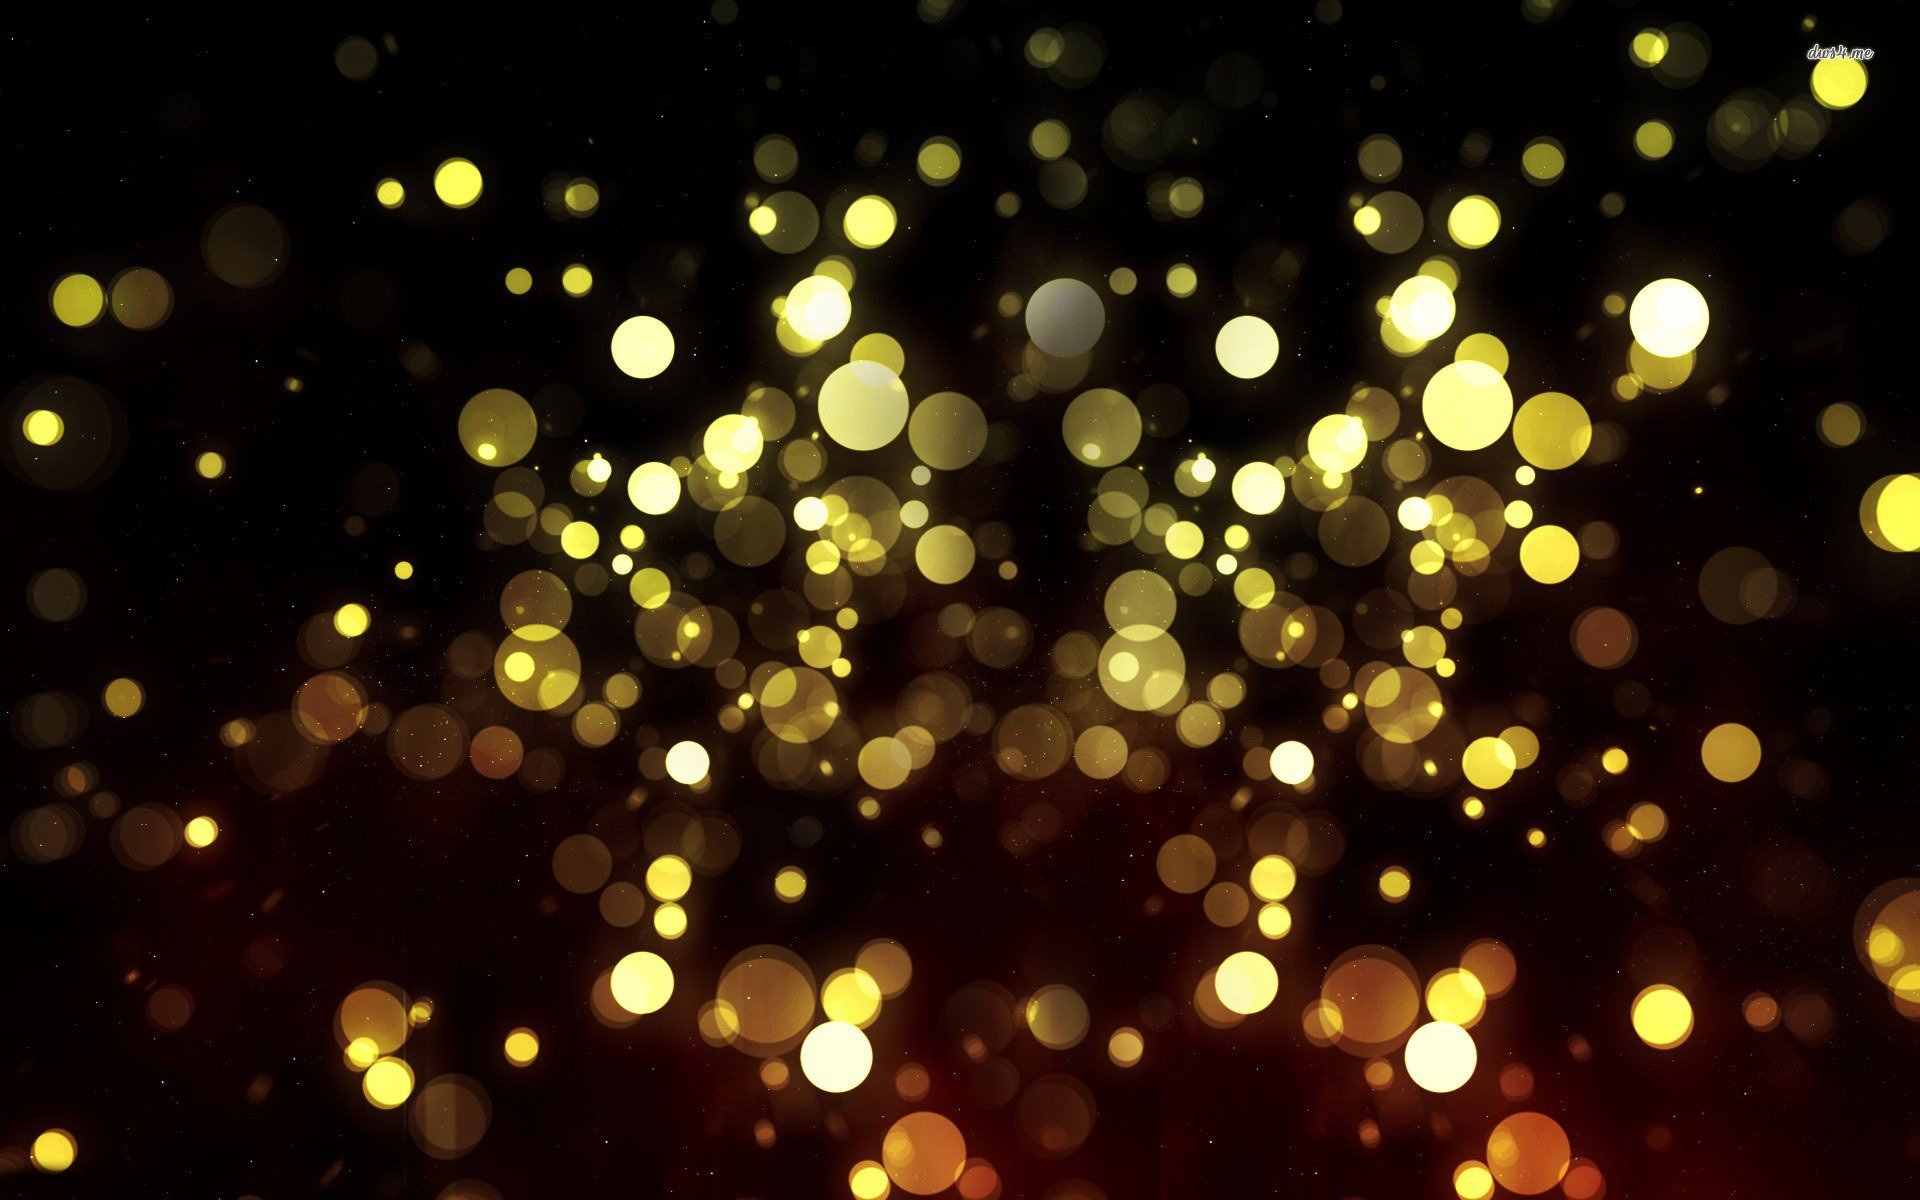 Artistic - Bokeh  Bubble Wallpaper